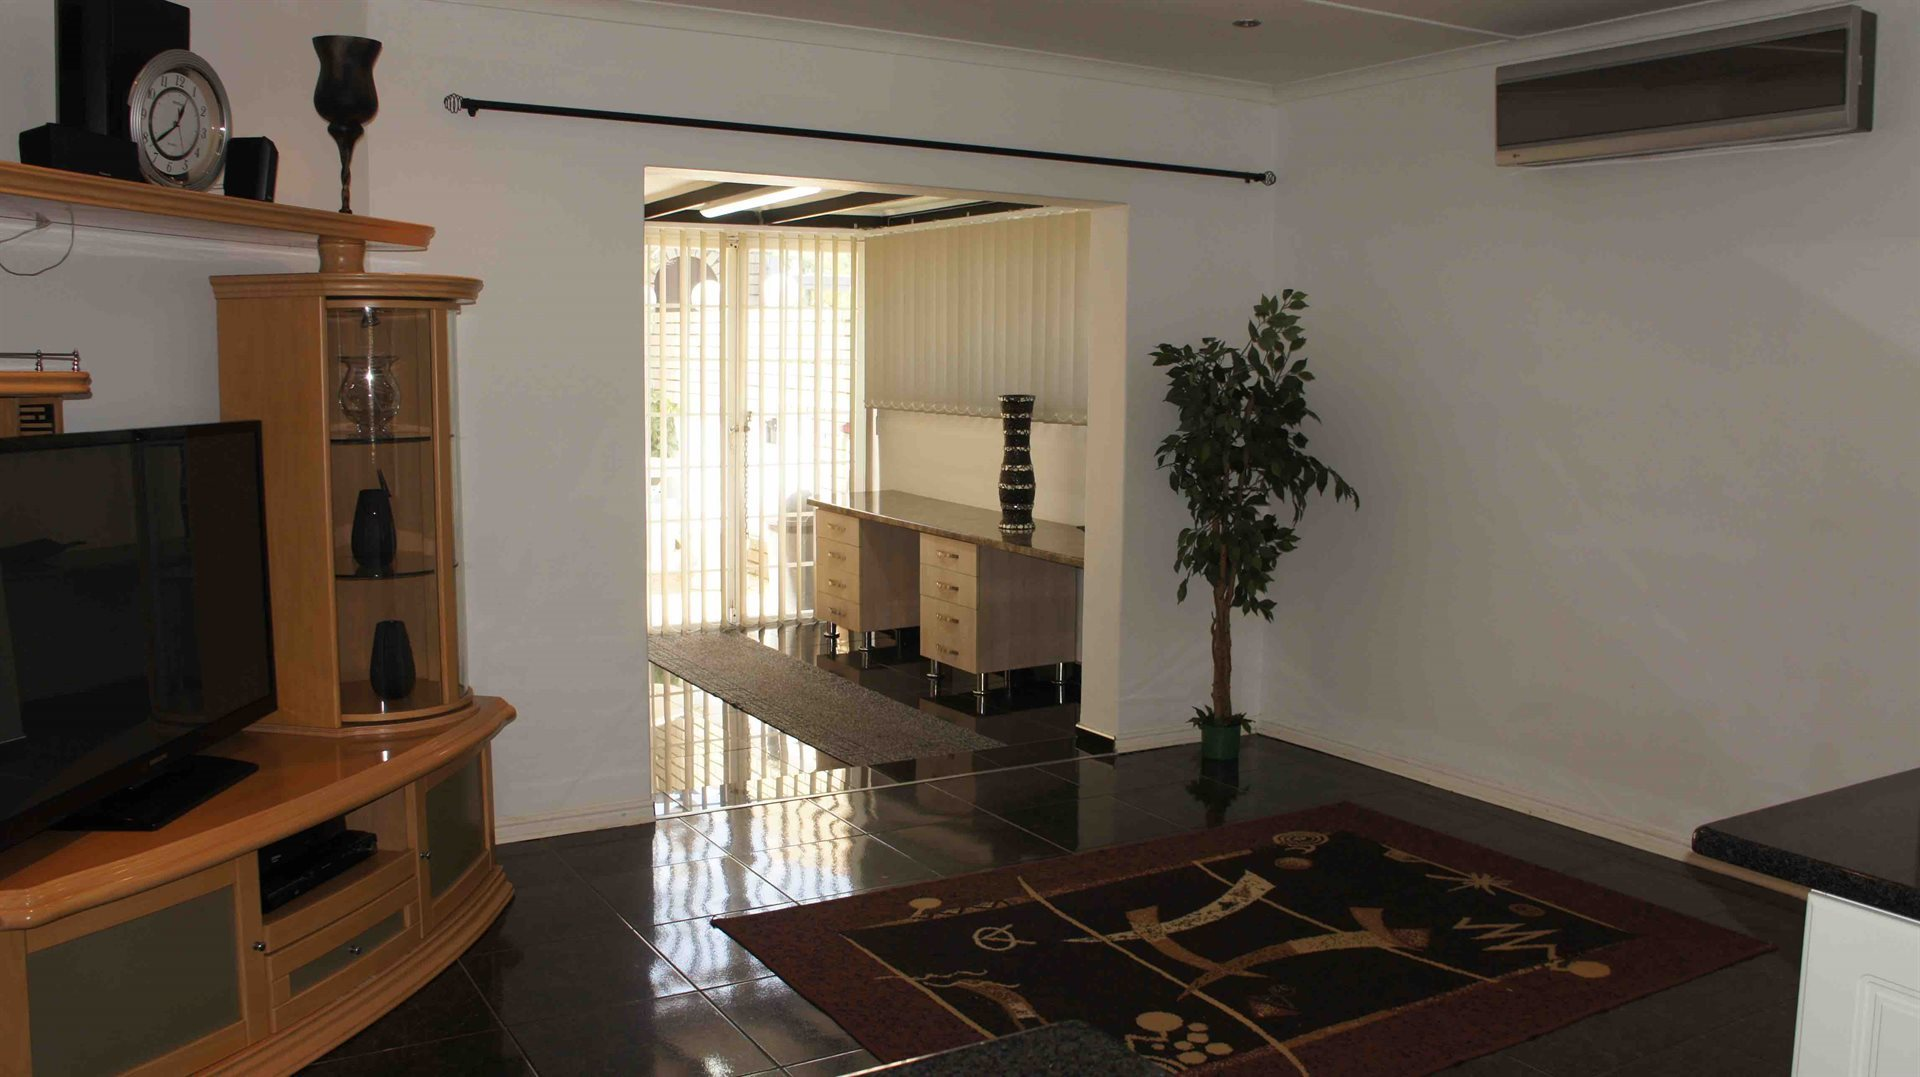 Meer En See property for sale. Ref No: 13544273. Picture no 8